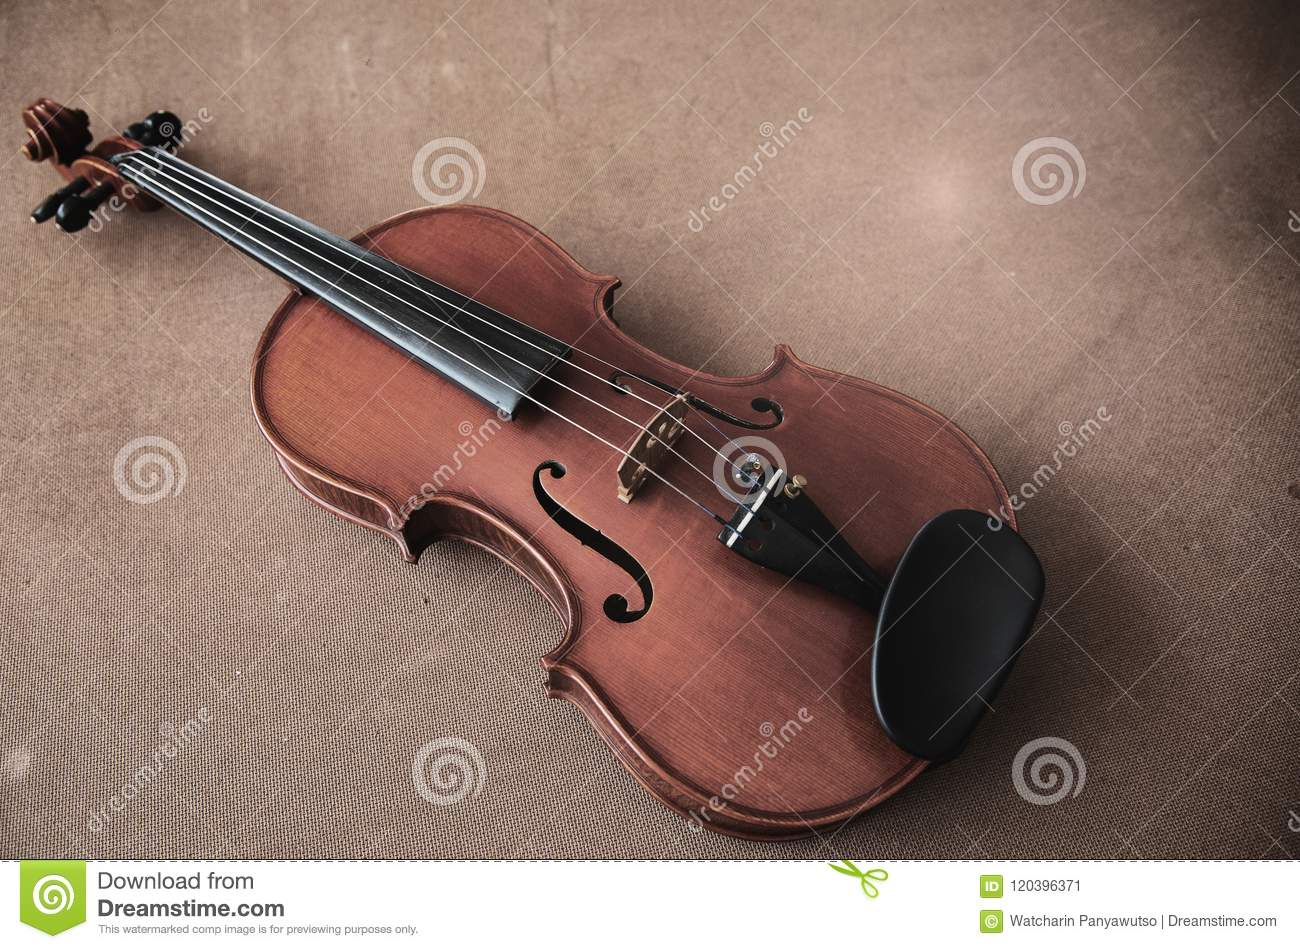 Violin on a colored knitted rug stock photo image of concept.